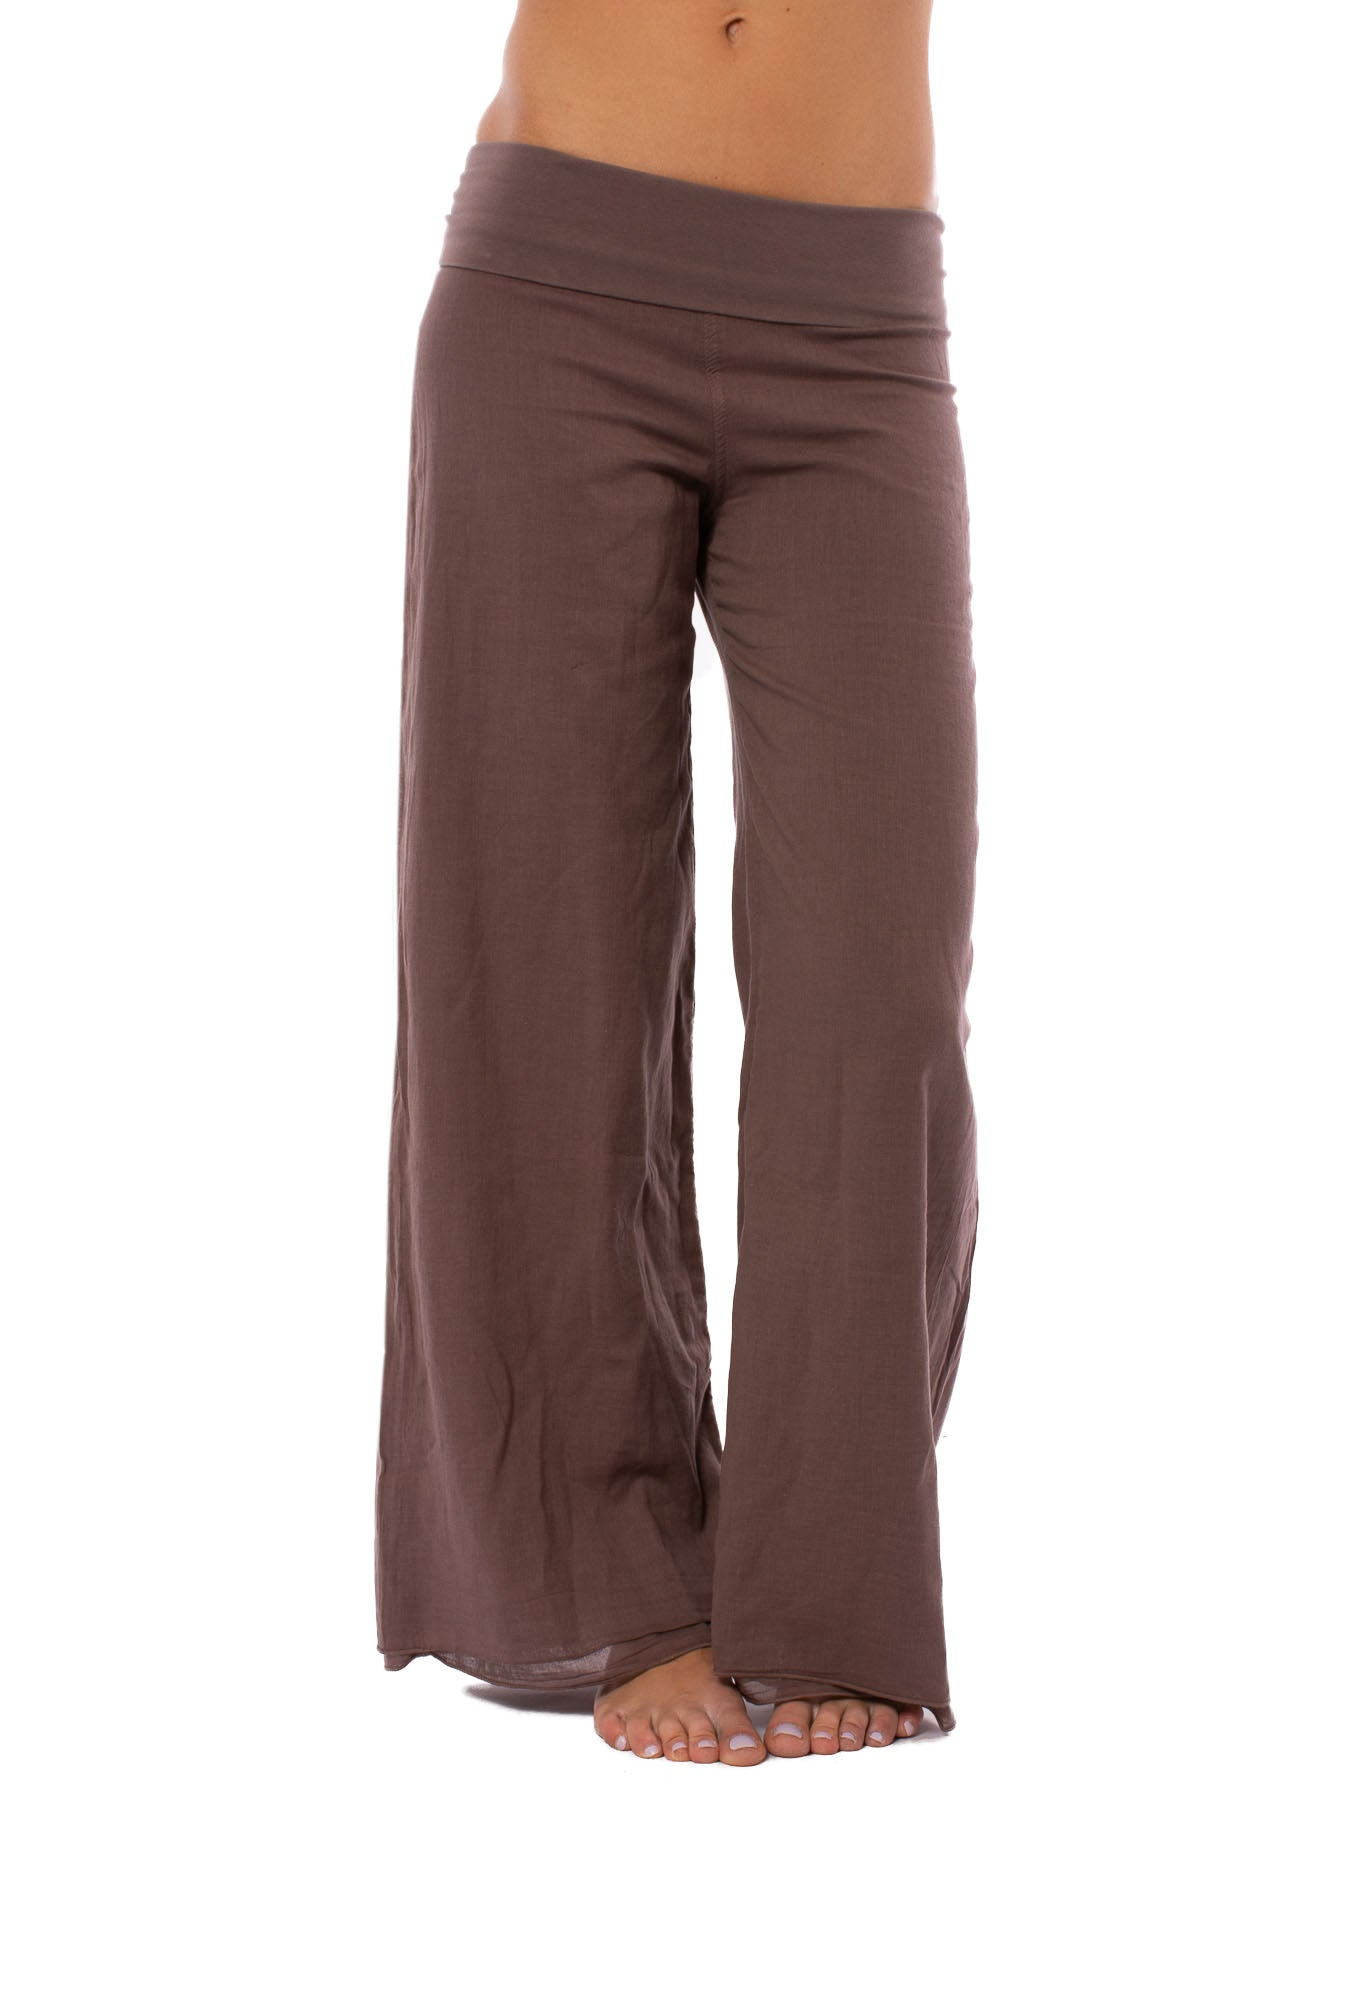 Hard Tail Forever - Double Layered Voile Pant (VL-29, Mocha)